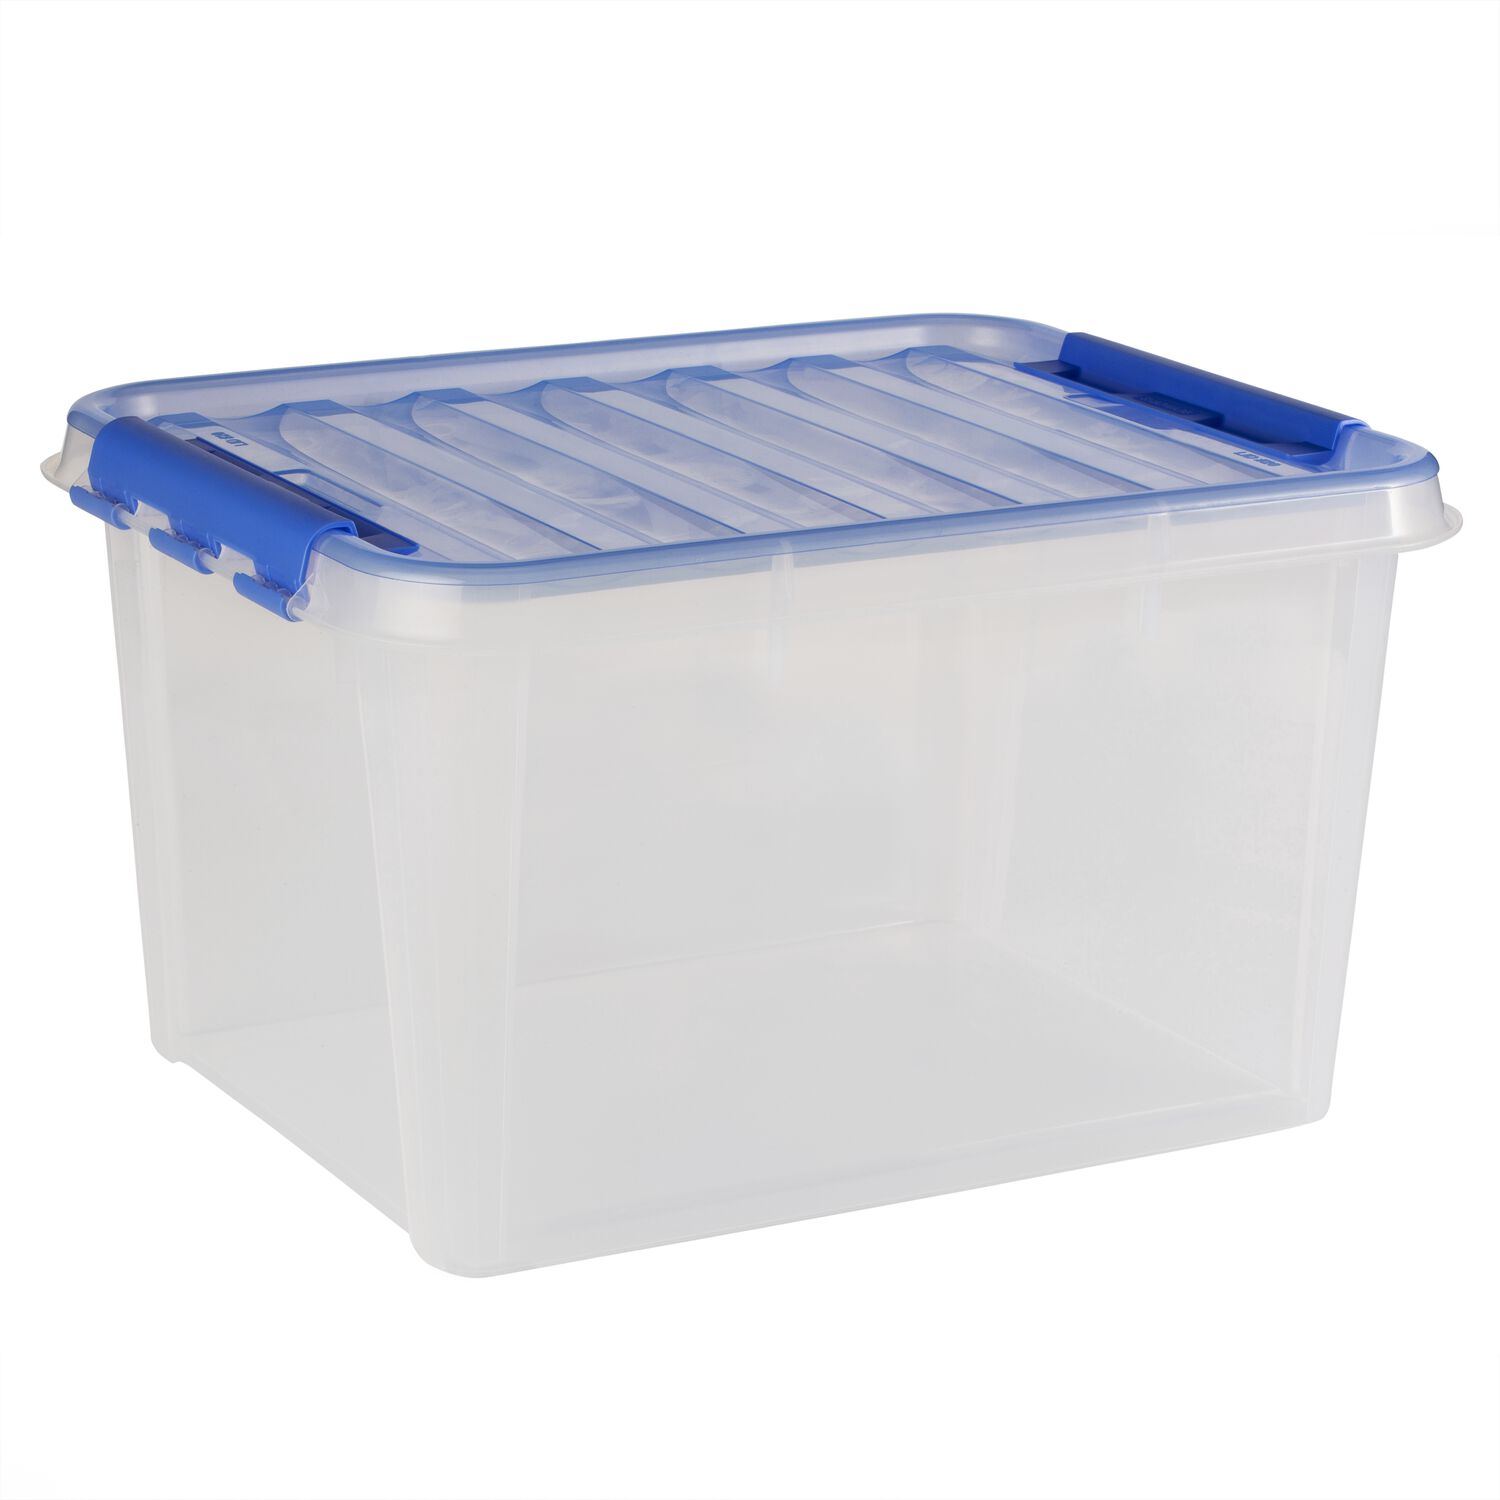 Snapware smart store 20 x 12 home storage container w for Smart house container